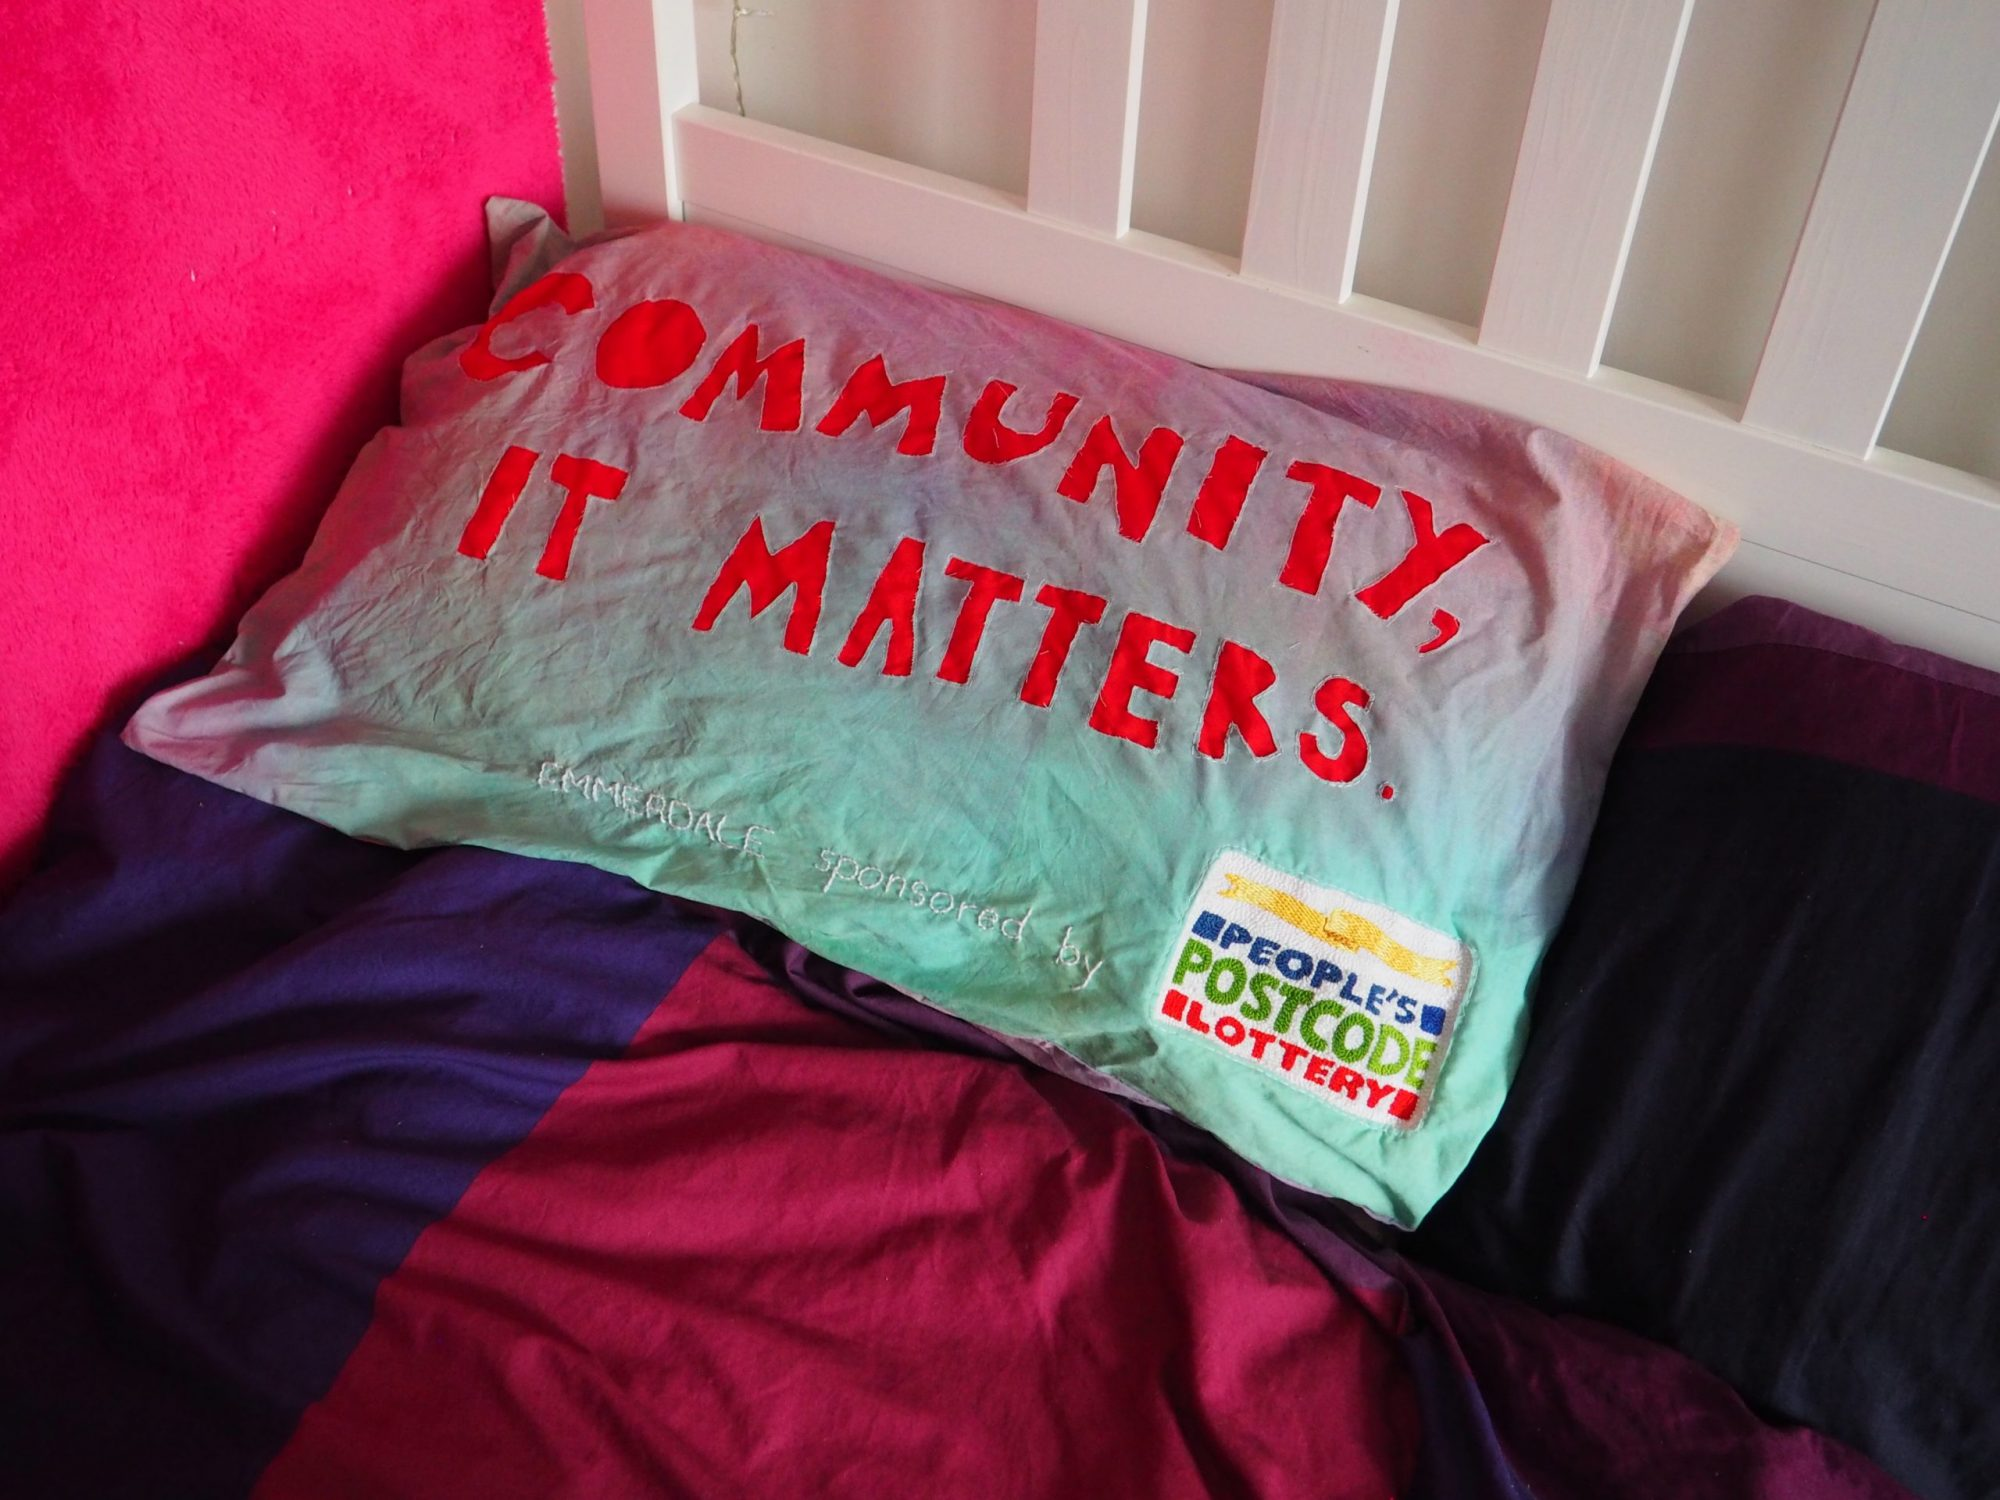 """Placed on a bed with a white headboard is a pillow dyed with a fade of green to pink with the words: """"COMMUNITY, IT MATTERS"""" in large letters on the front in red fabric. The wall to the left is bright pink and the bed sheets are dark purples and blues. Below embroidered in white thread are the words: """"EMMERDALE sponsored by"""" next to a very fine detailed embroidered logo of: """"People's Postcode Lottery""""."""